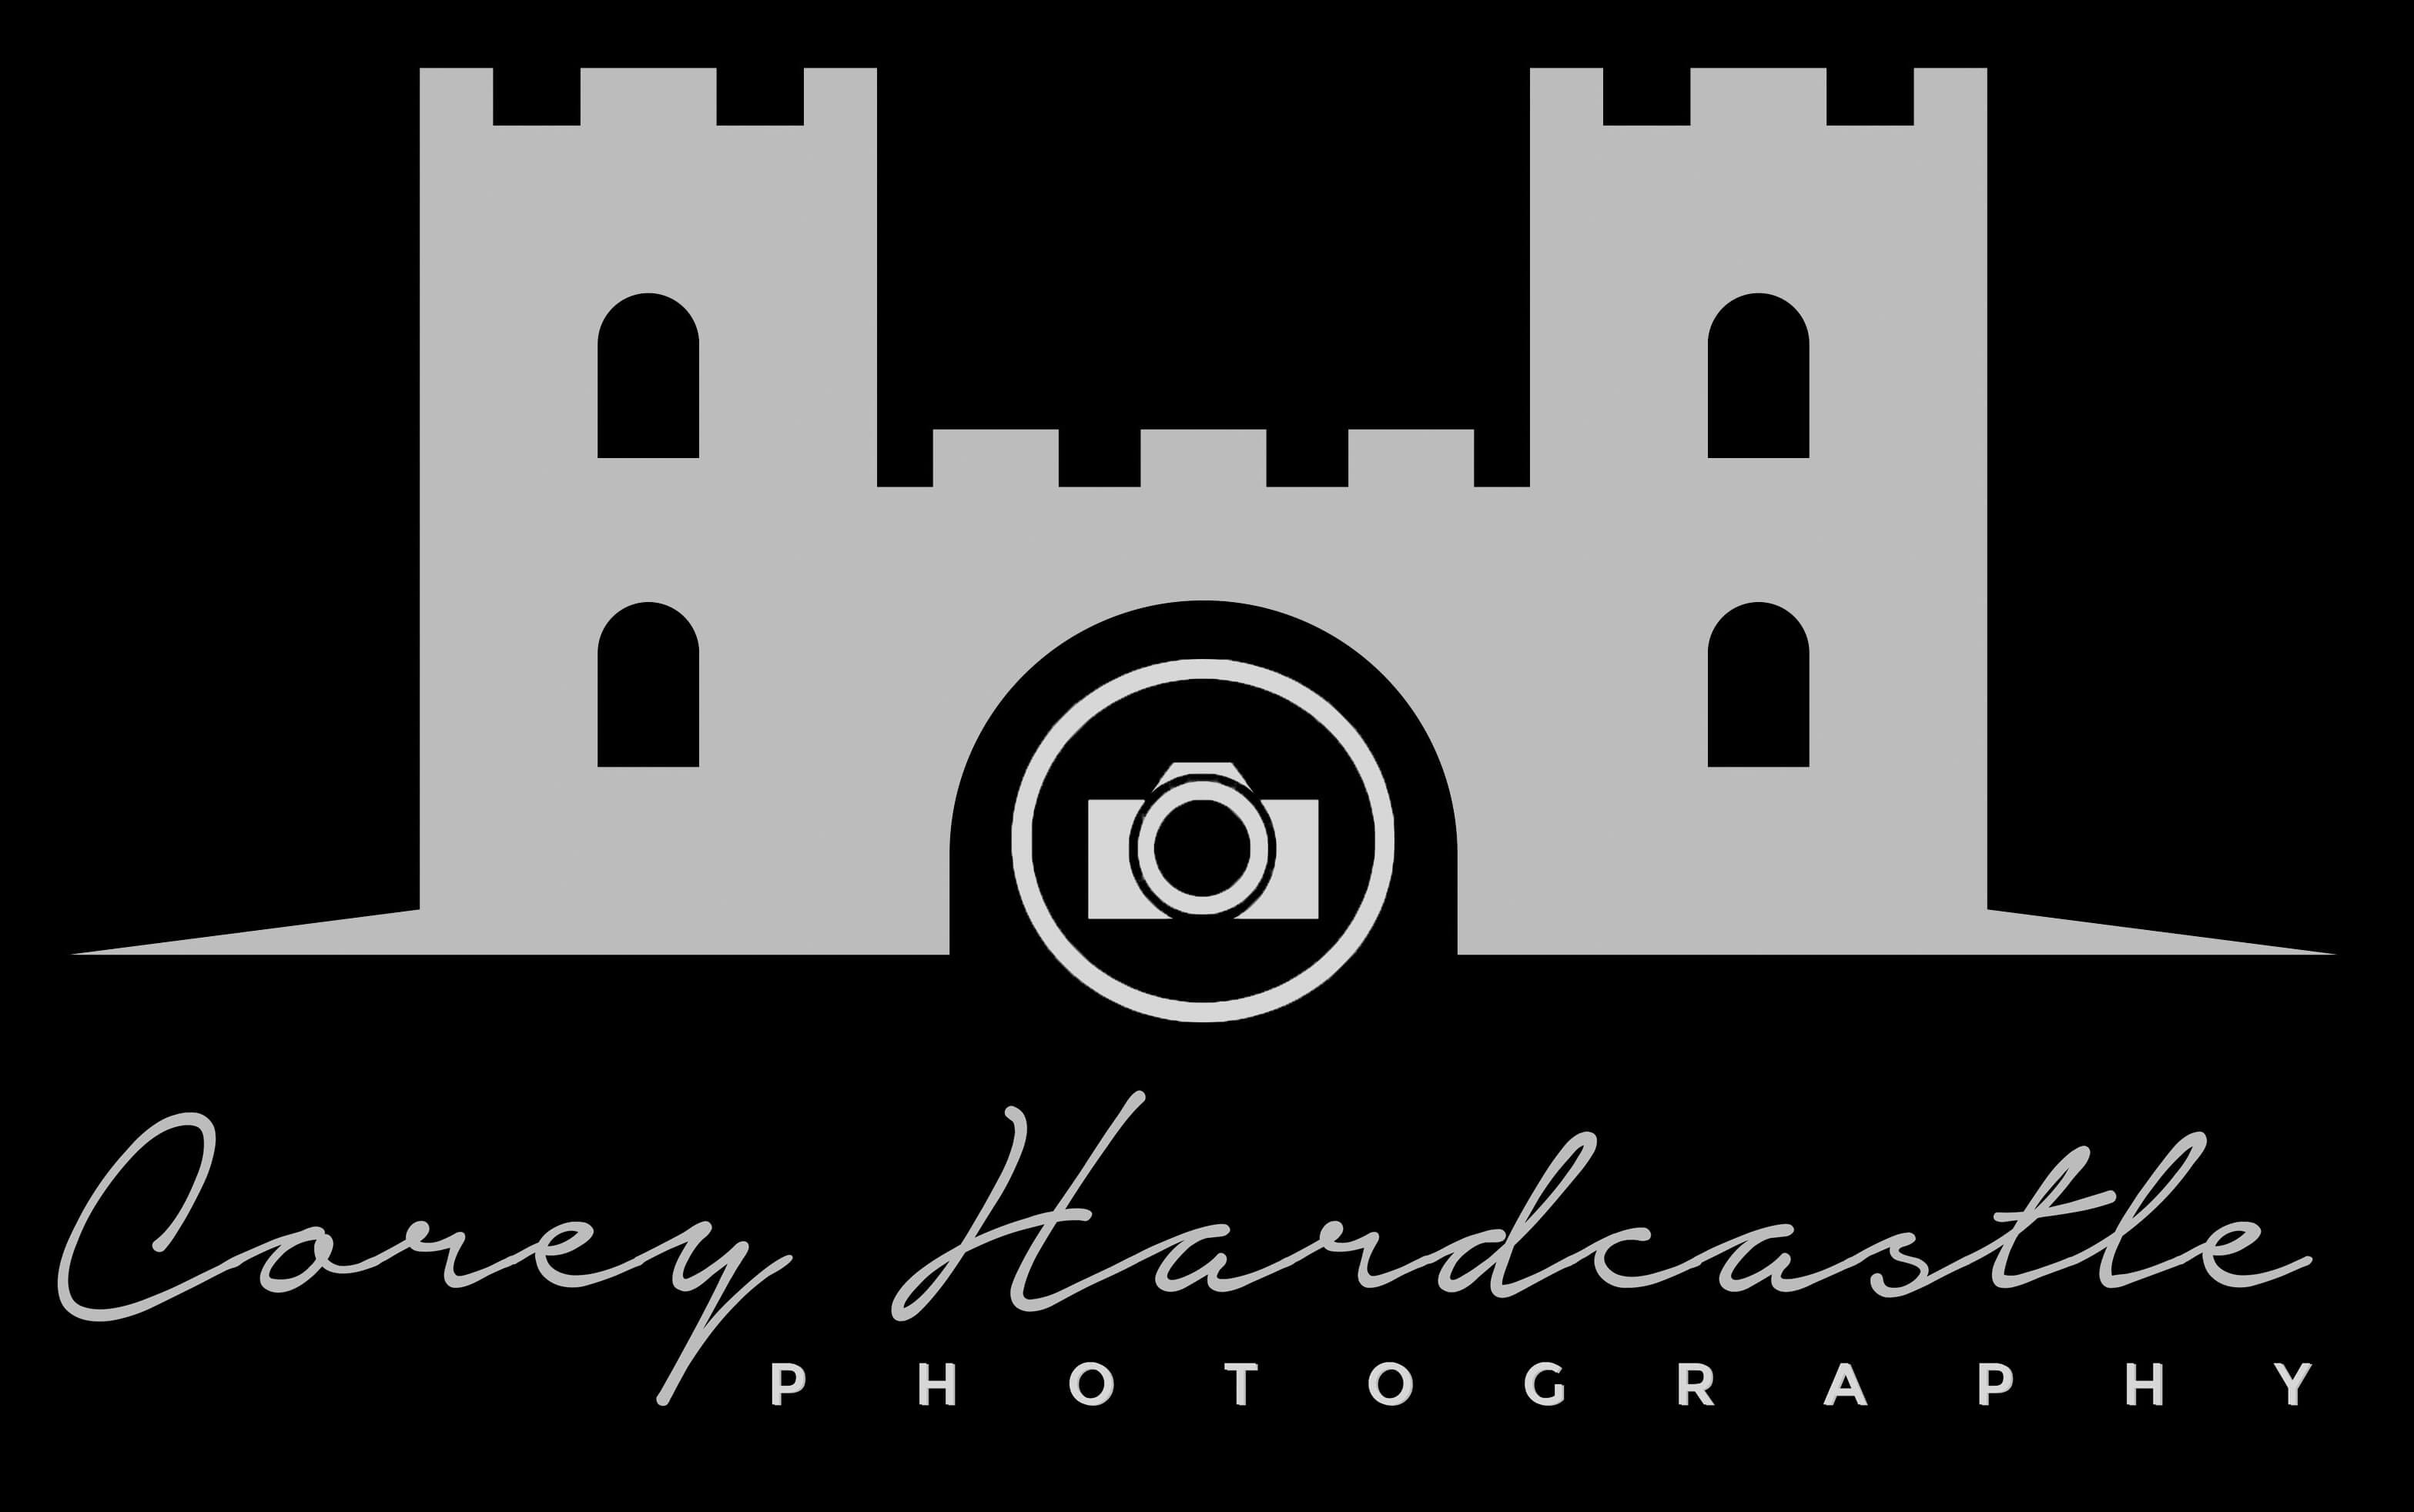 Corey Hardcastle Photography